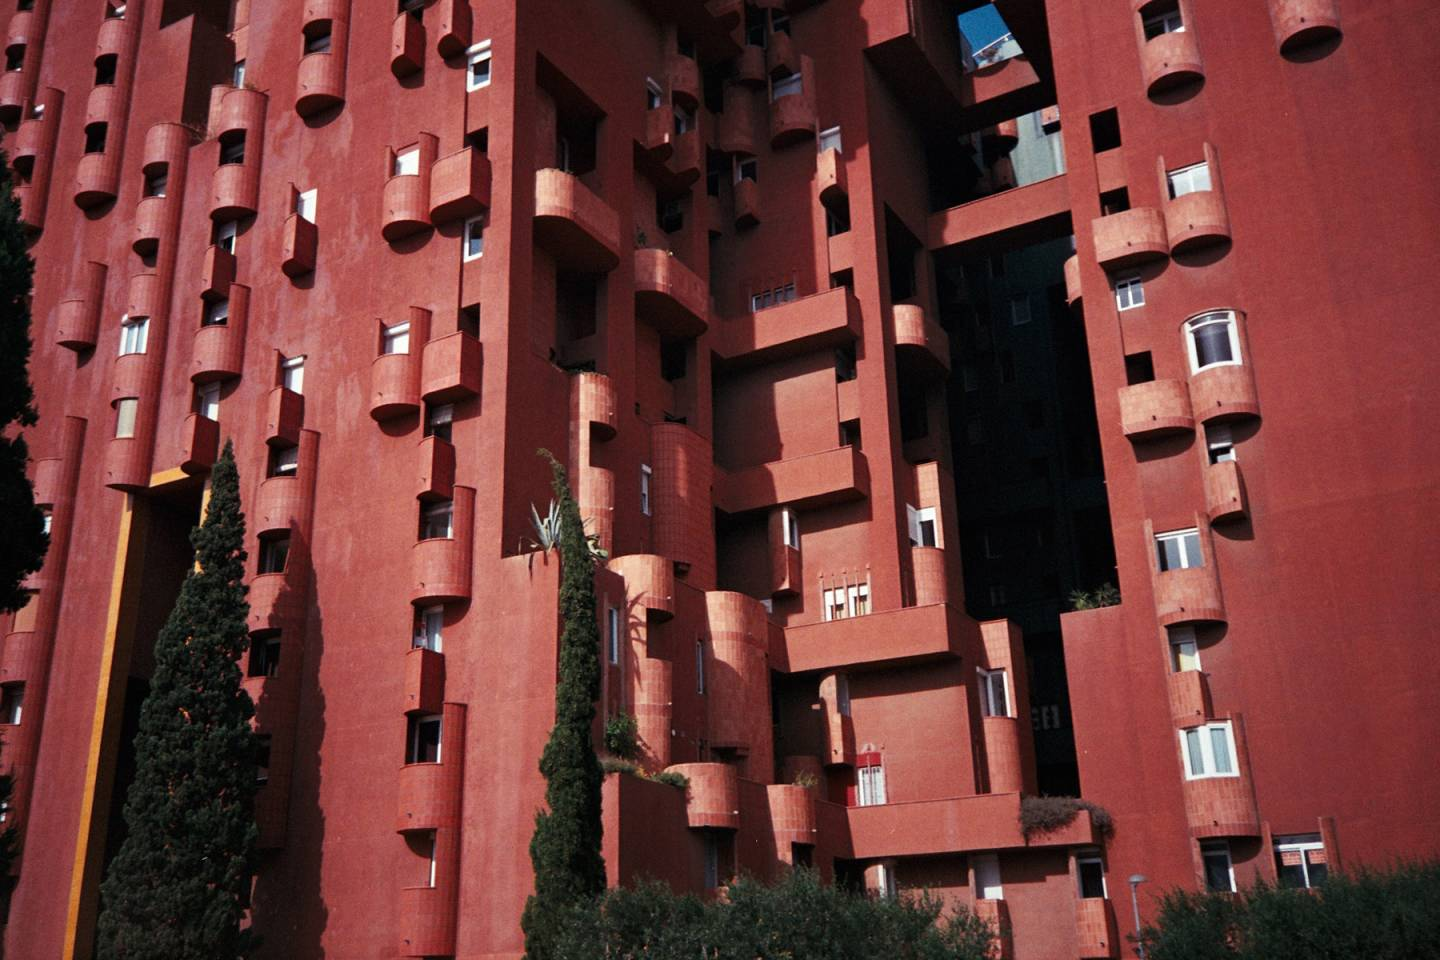 Lindsay Photo Essay | Building Culture... in Barcelona | Walden 7, photo by Anna Izquierdo